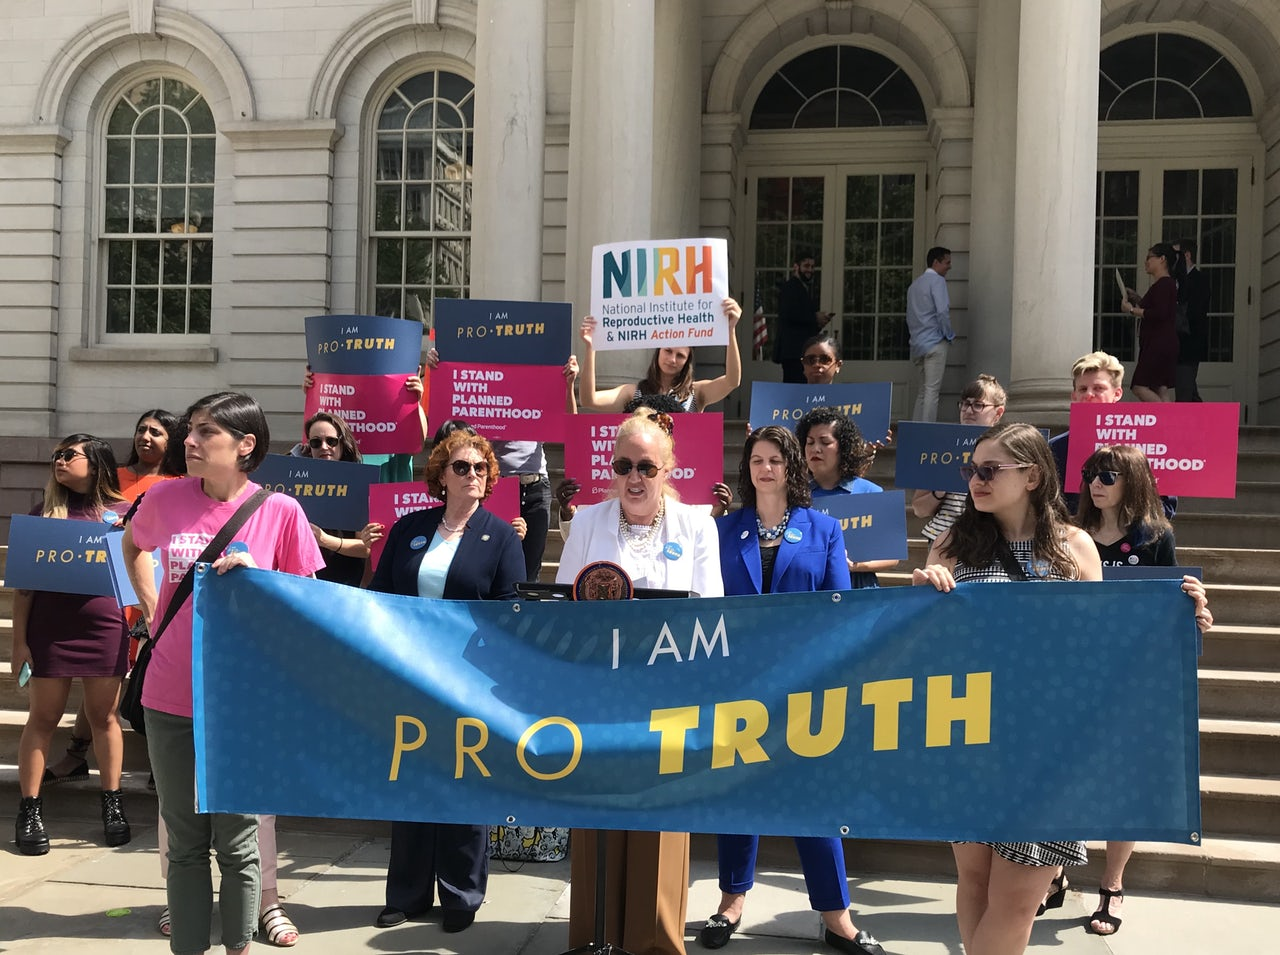 Manhattan Borough President Gayle Brewer speaks at the Pro Truth press conference outside of New York City Hall.